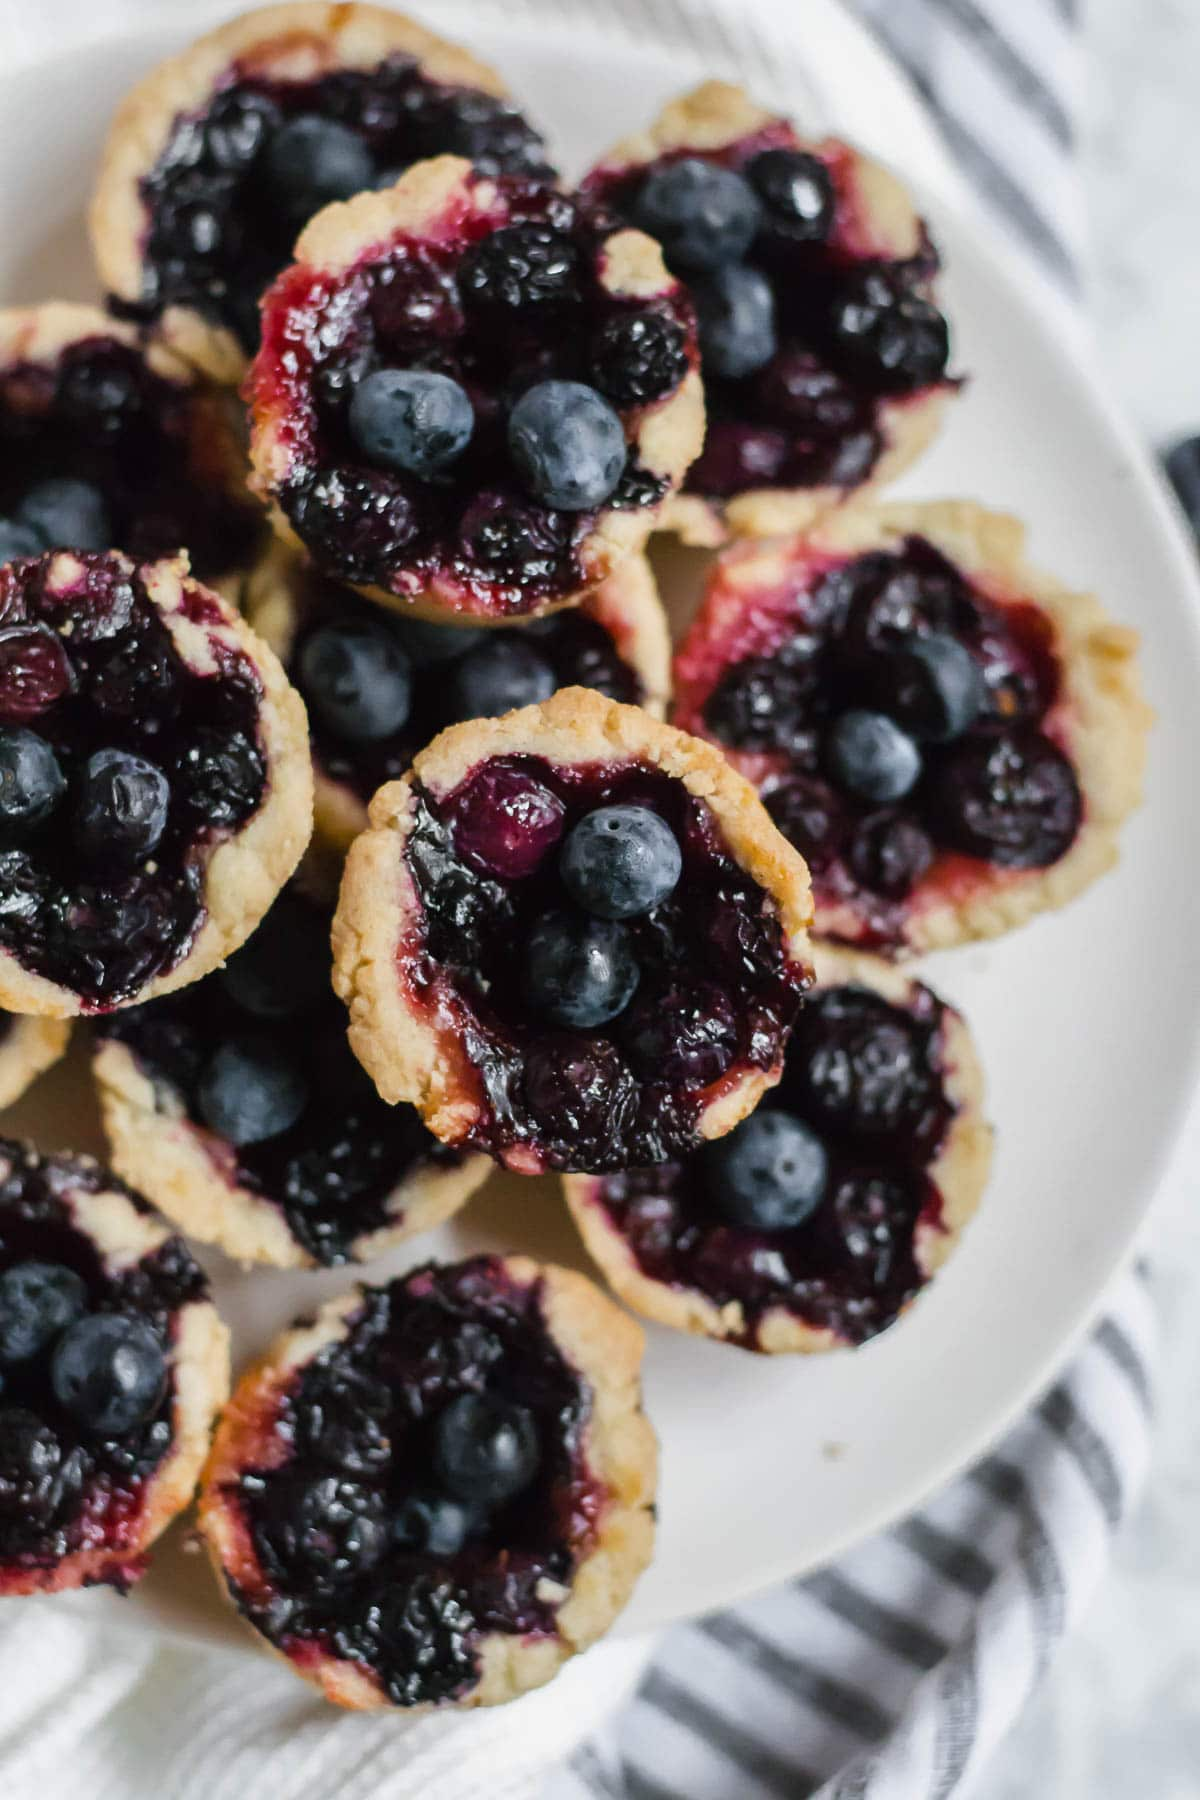 Aerial view of a plate of gluten-free mini blueberry tarts on a striped napkin.